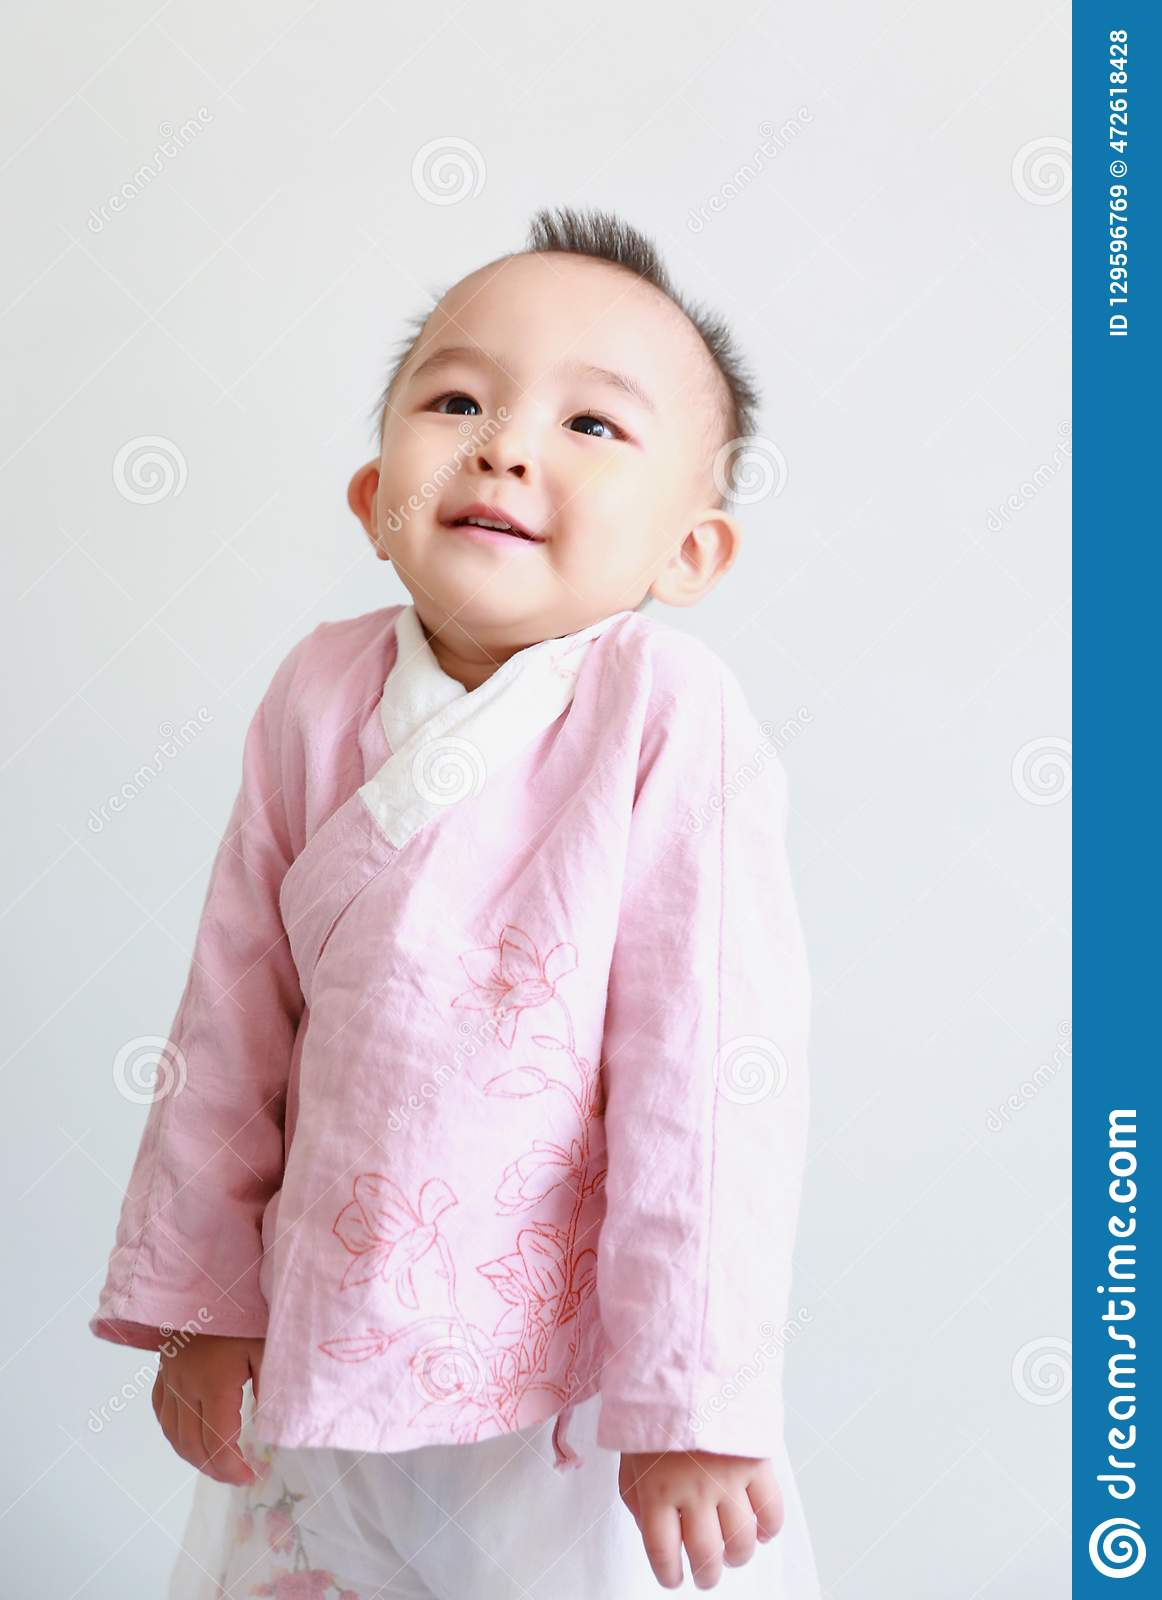 Lovely Baby Girl Make A Face Stock Image Image Of Bright Explores